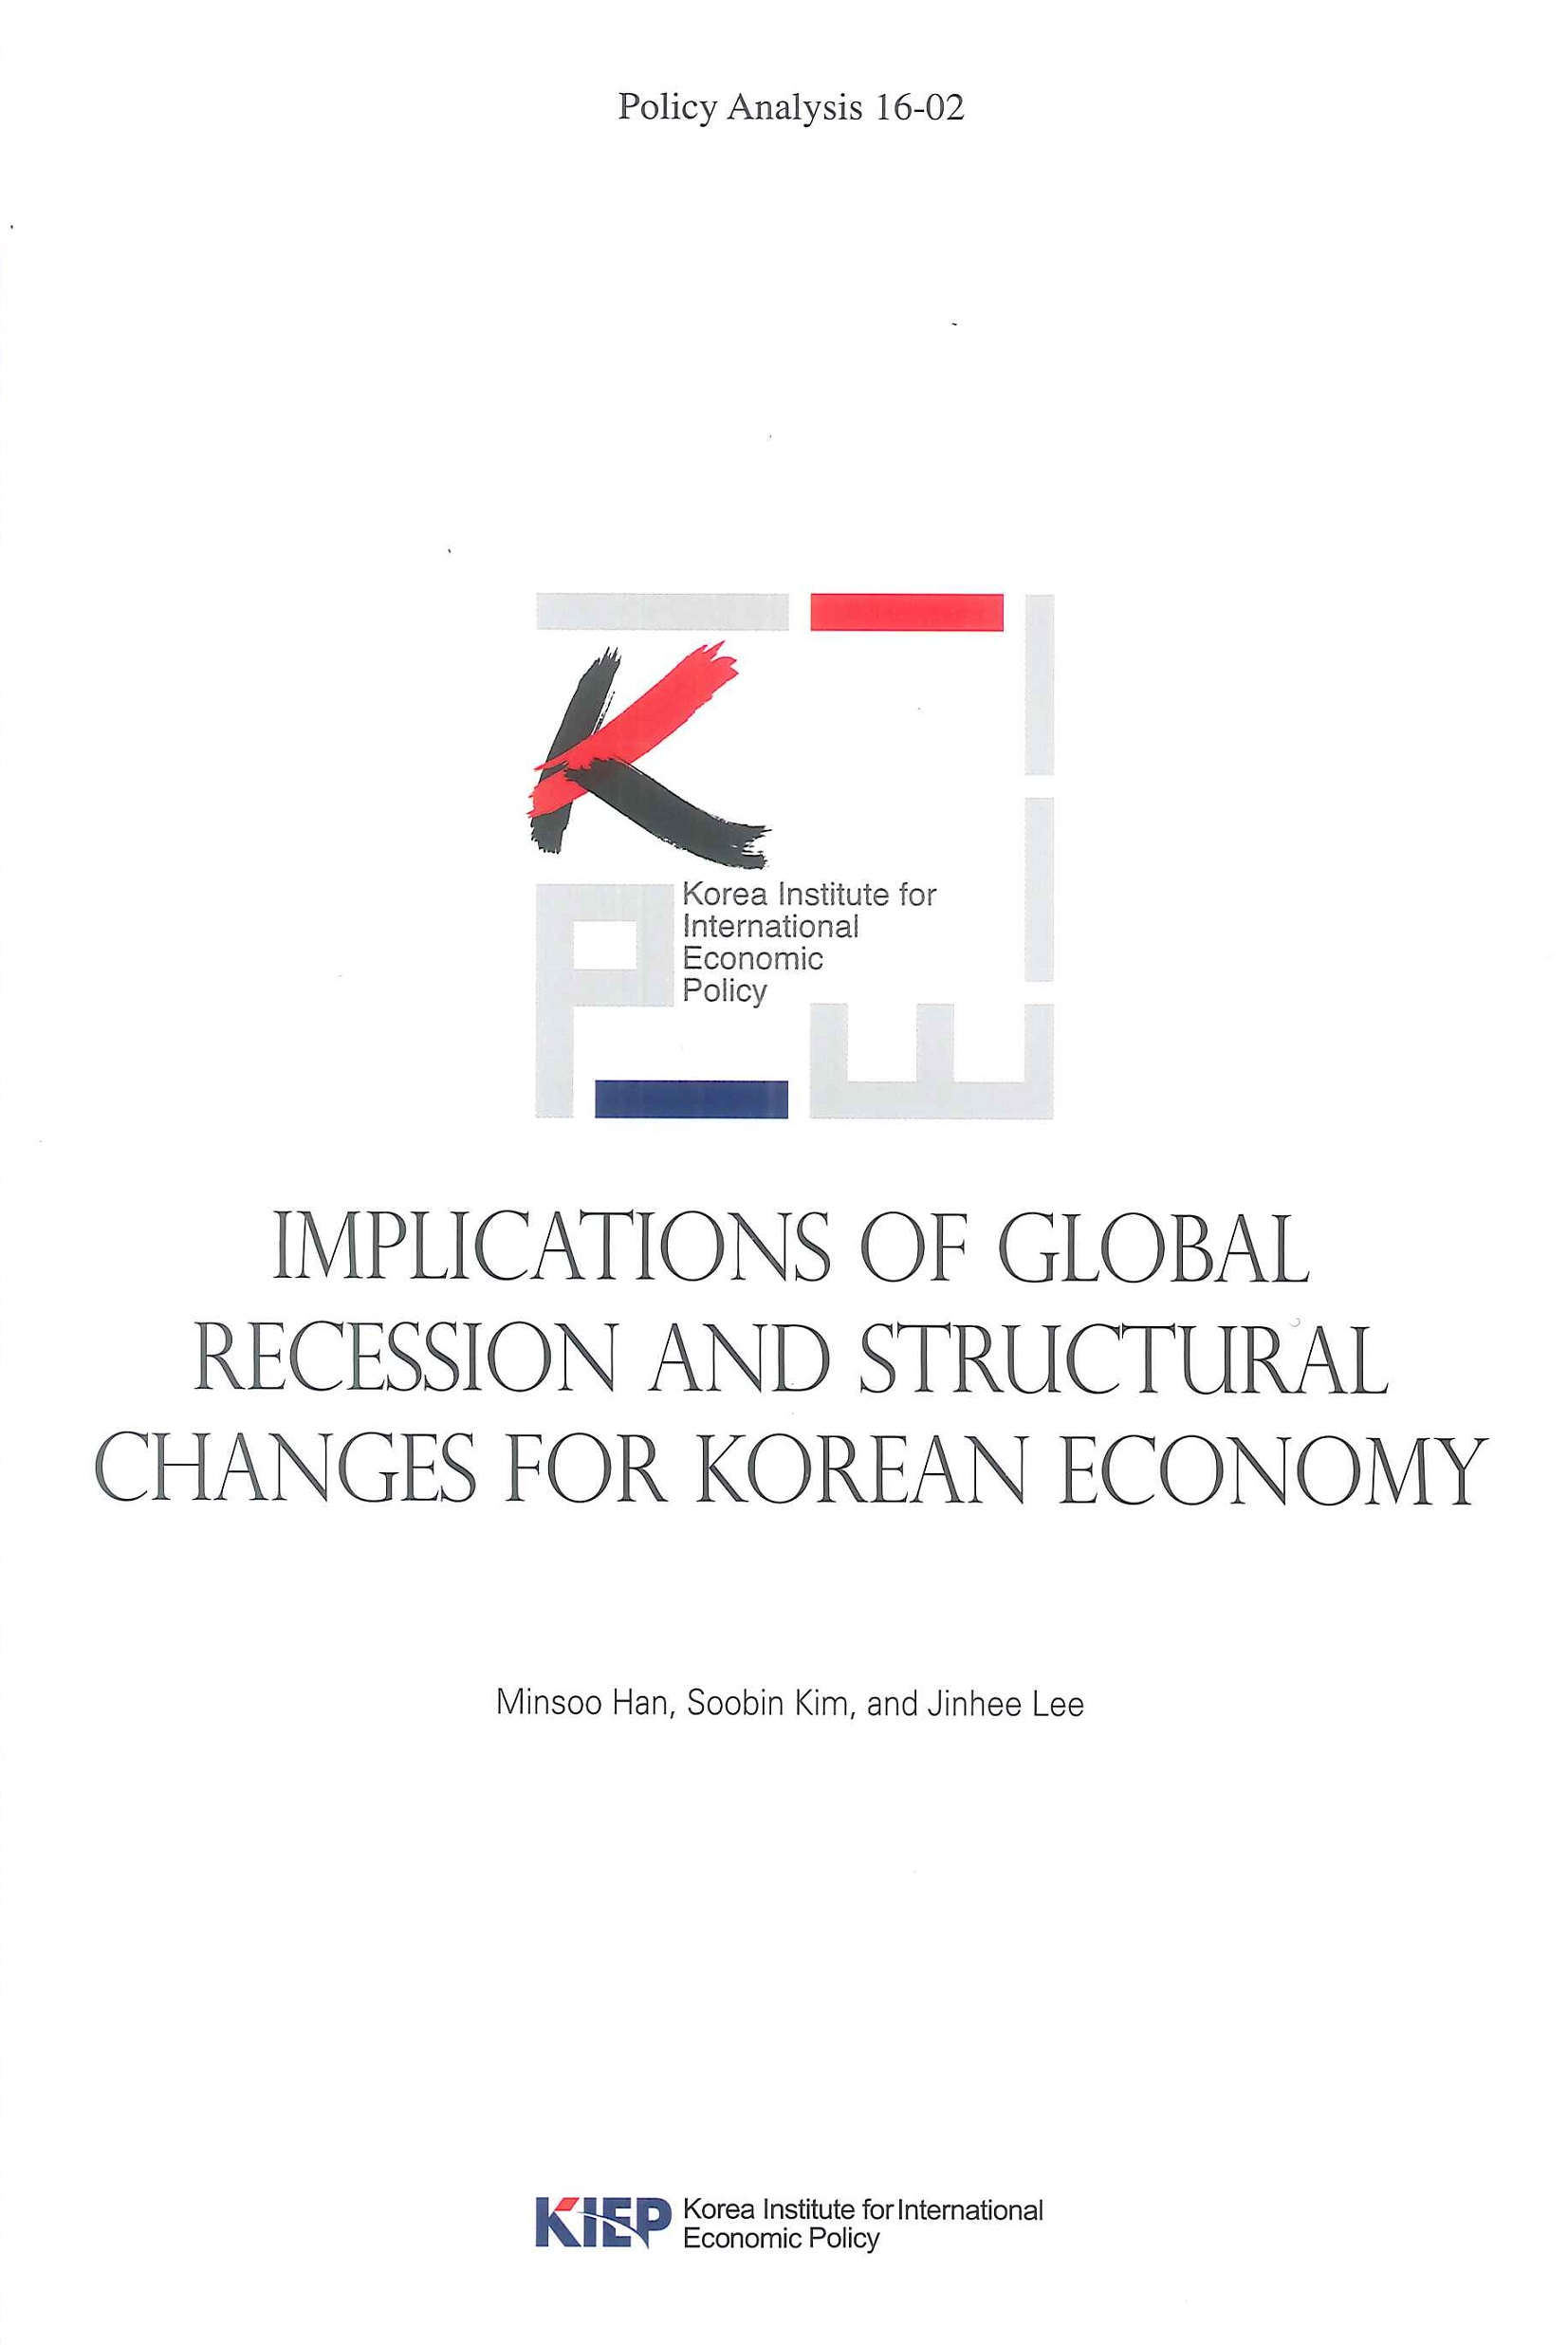 Implications of global recession and structural changes for Korean economy